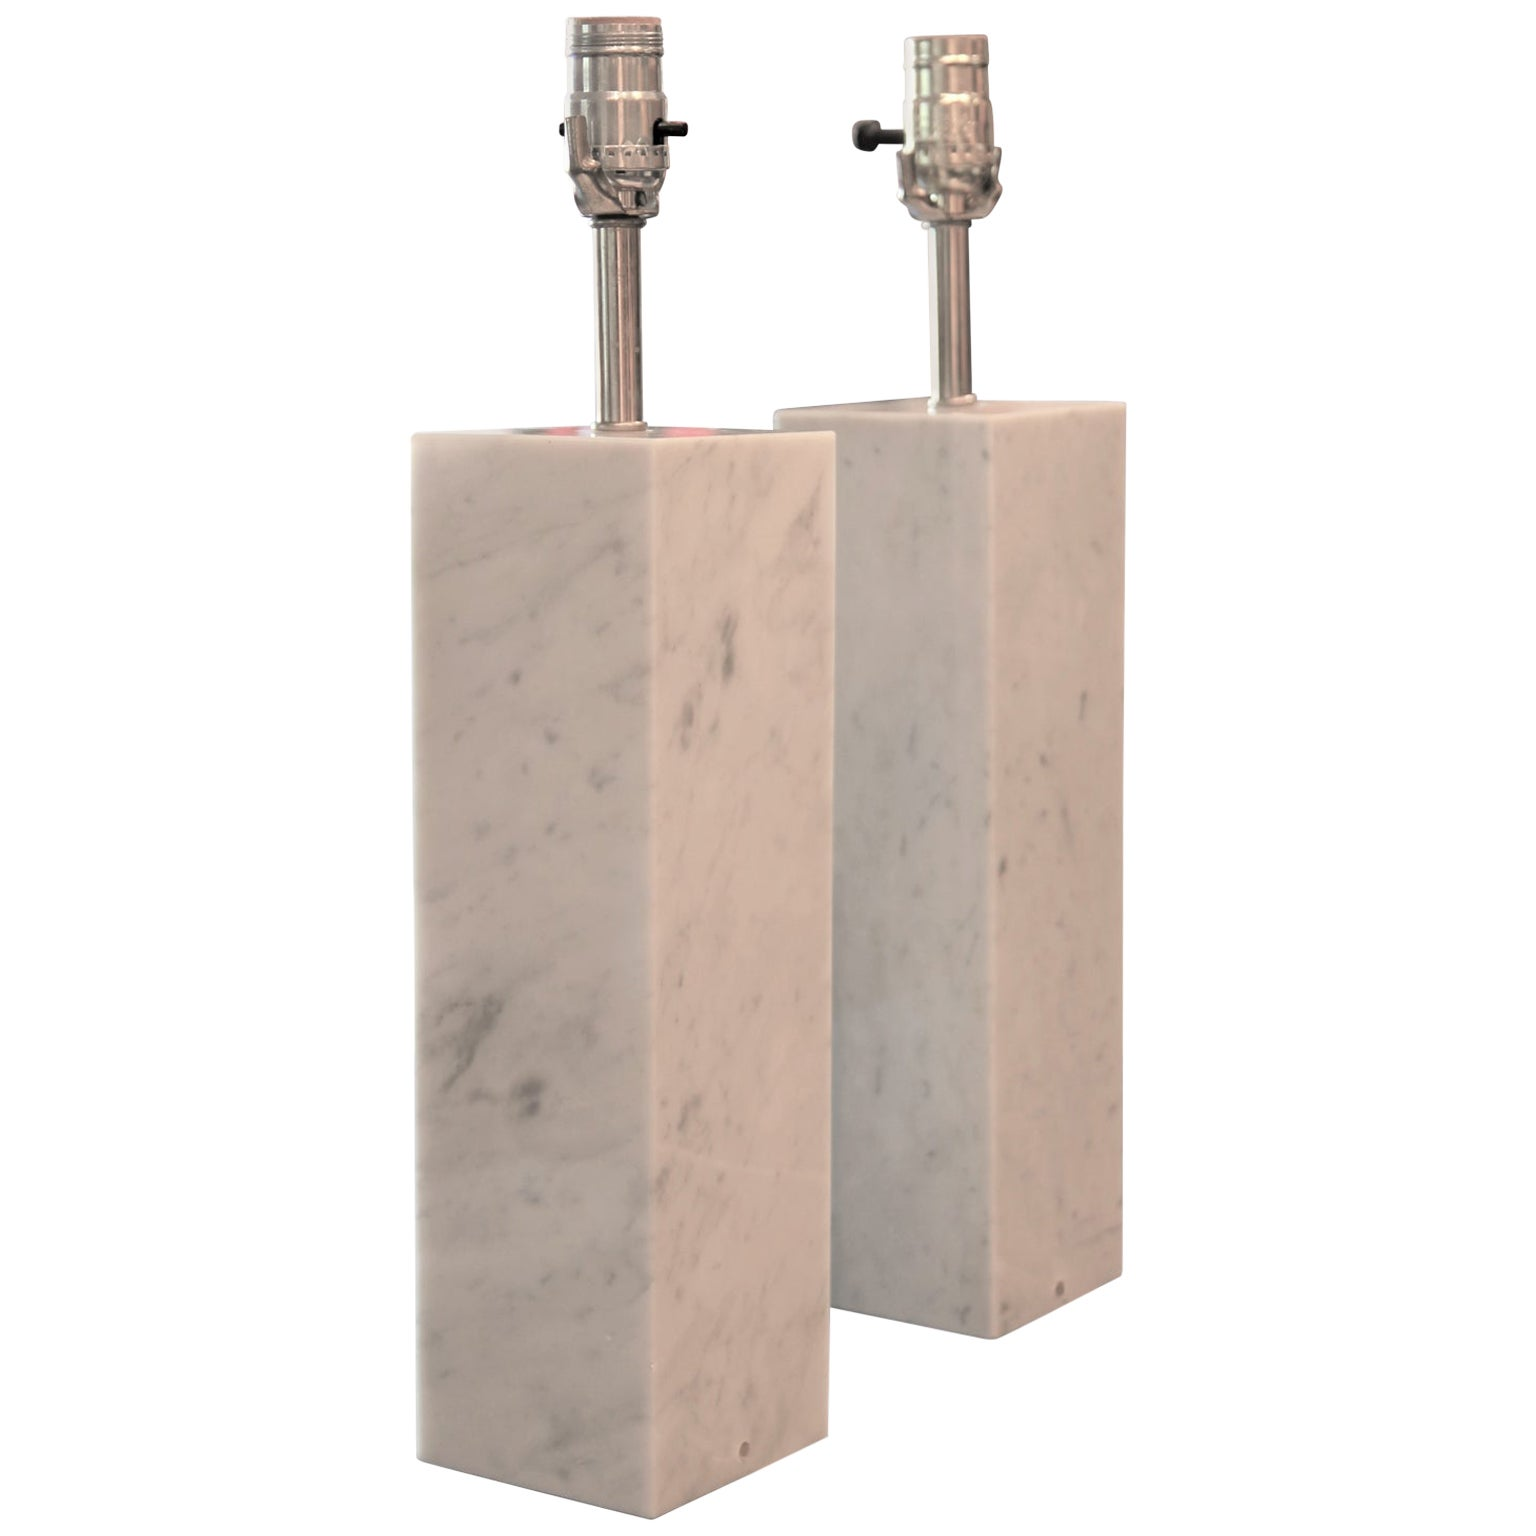 Pair of Rectangular White Marble Lamps Designed by Nessen Lamps